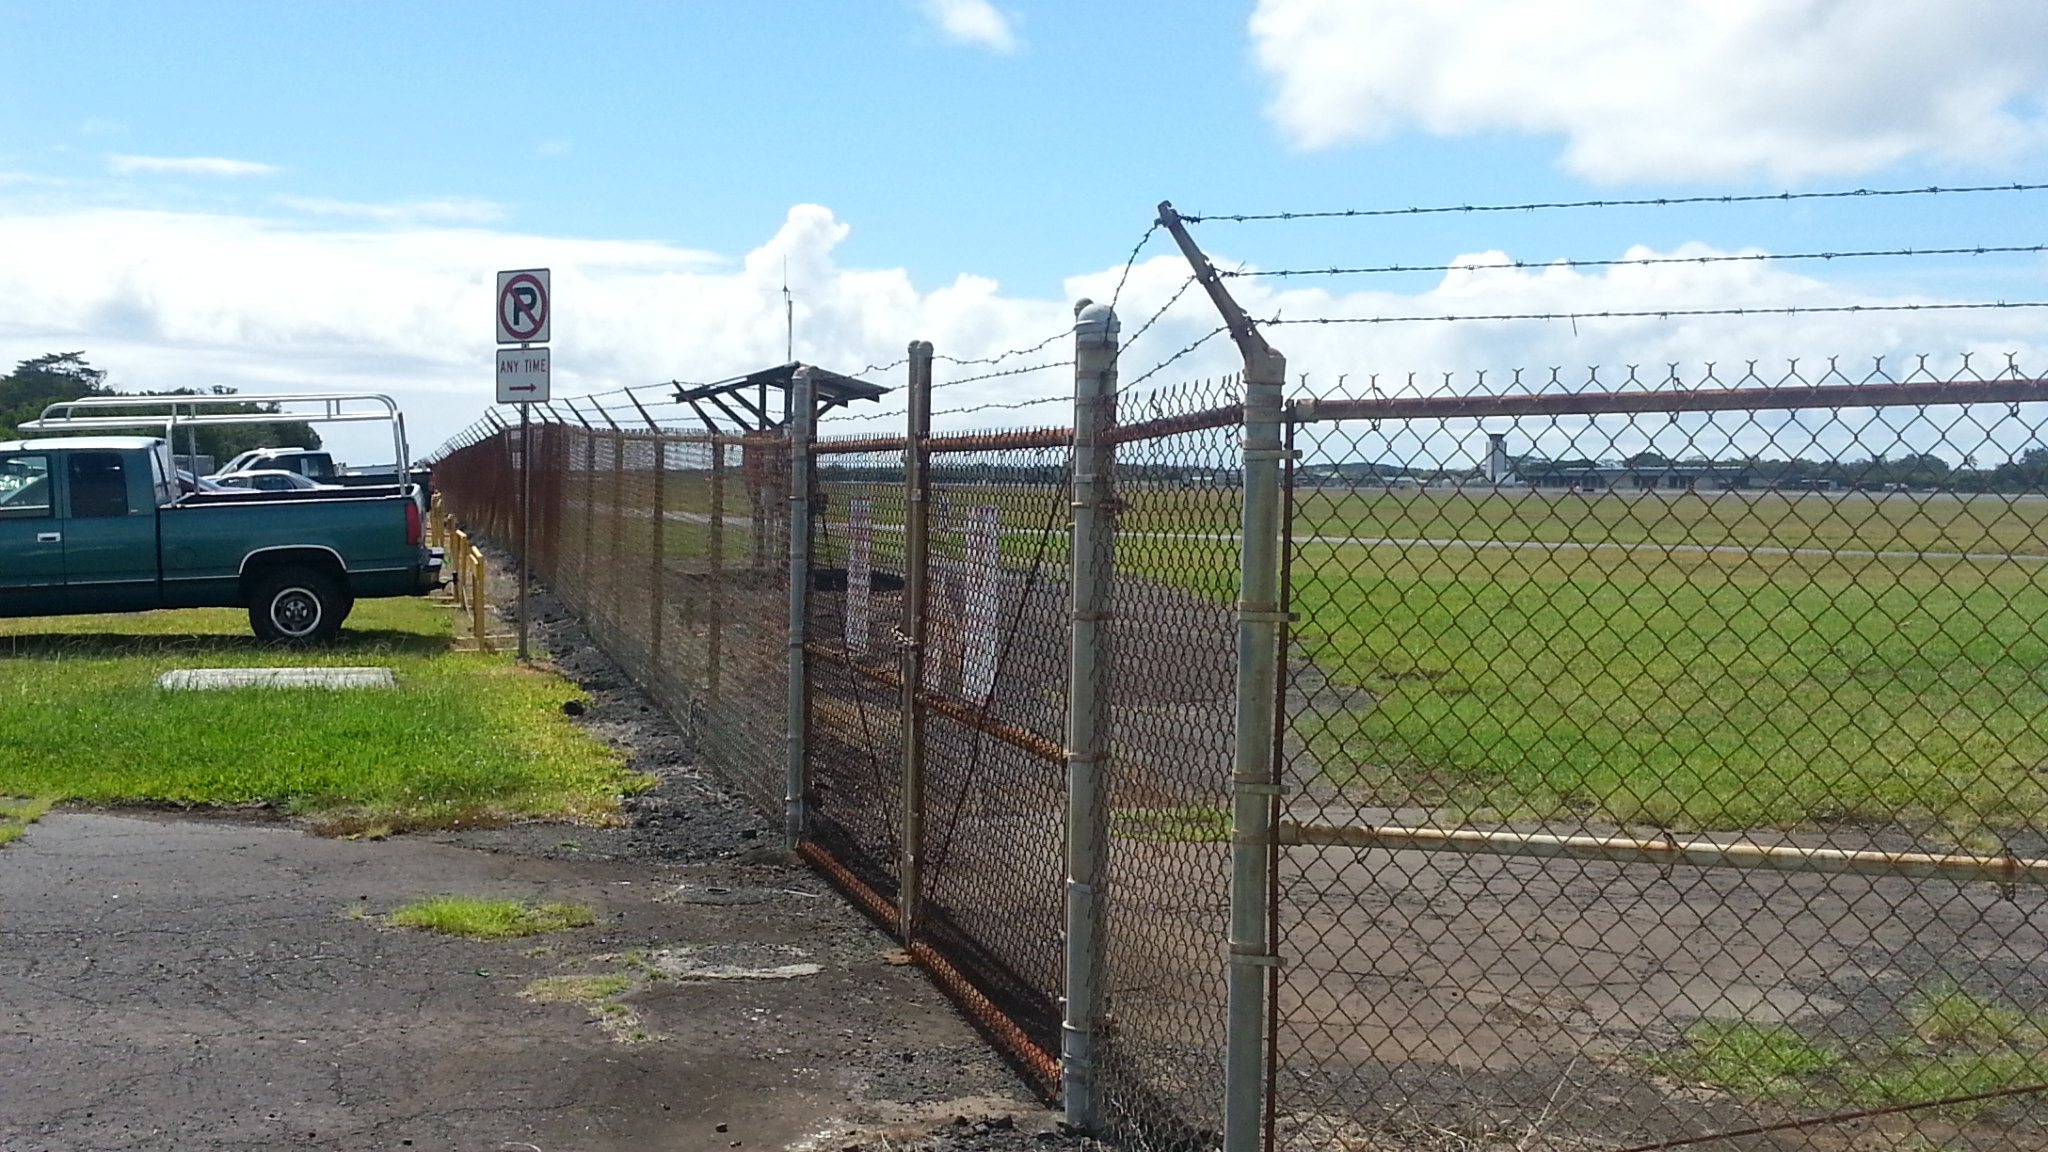 New Perimeter Fencing Planned For Hilo S Airport Big